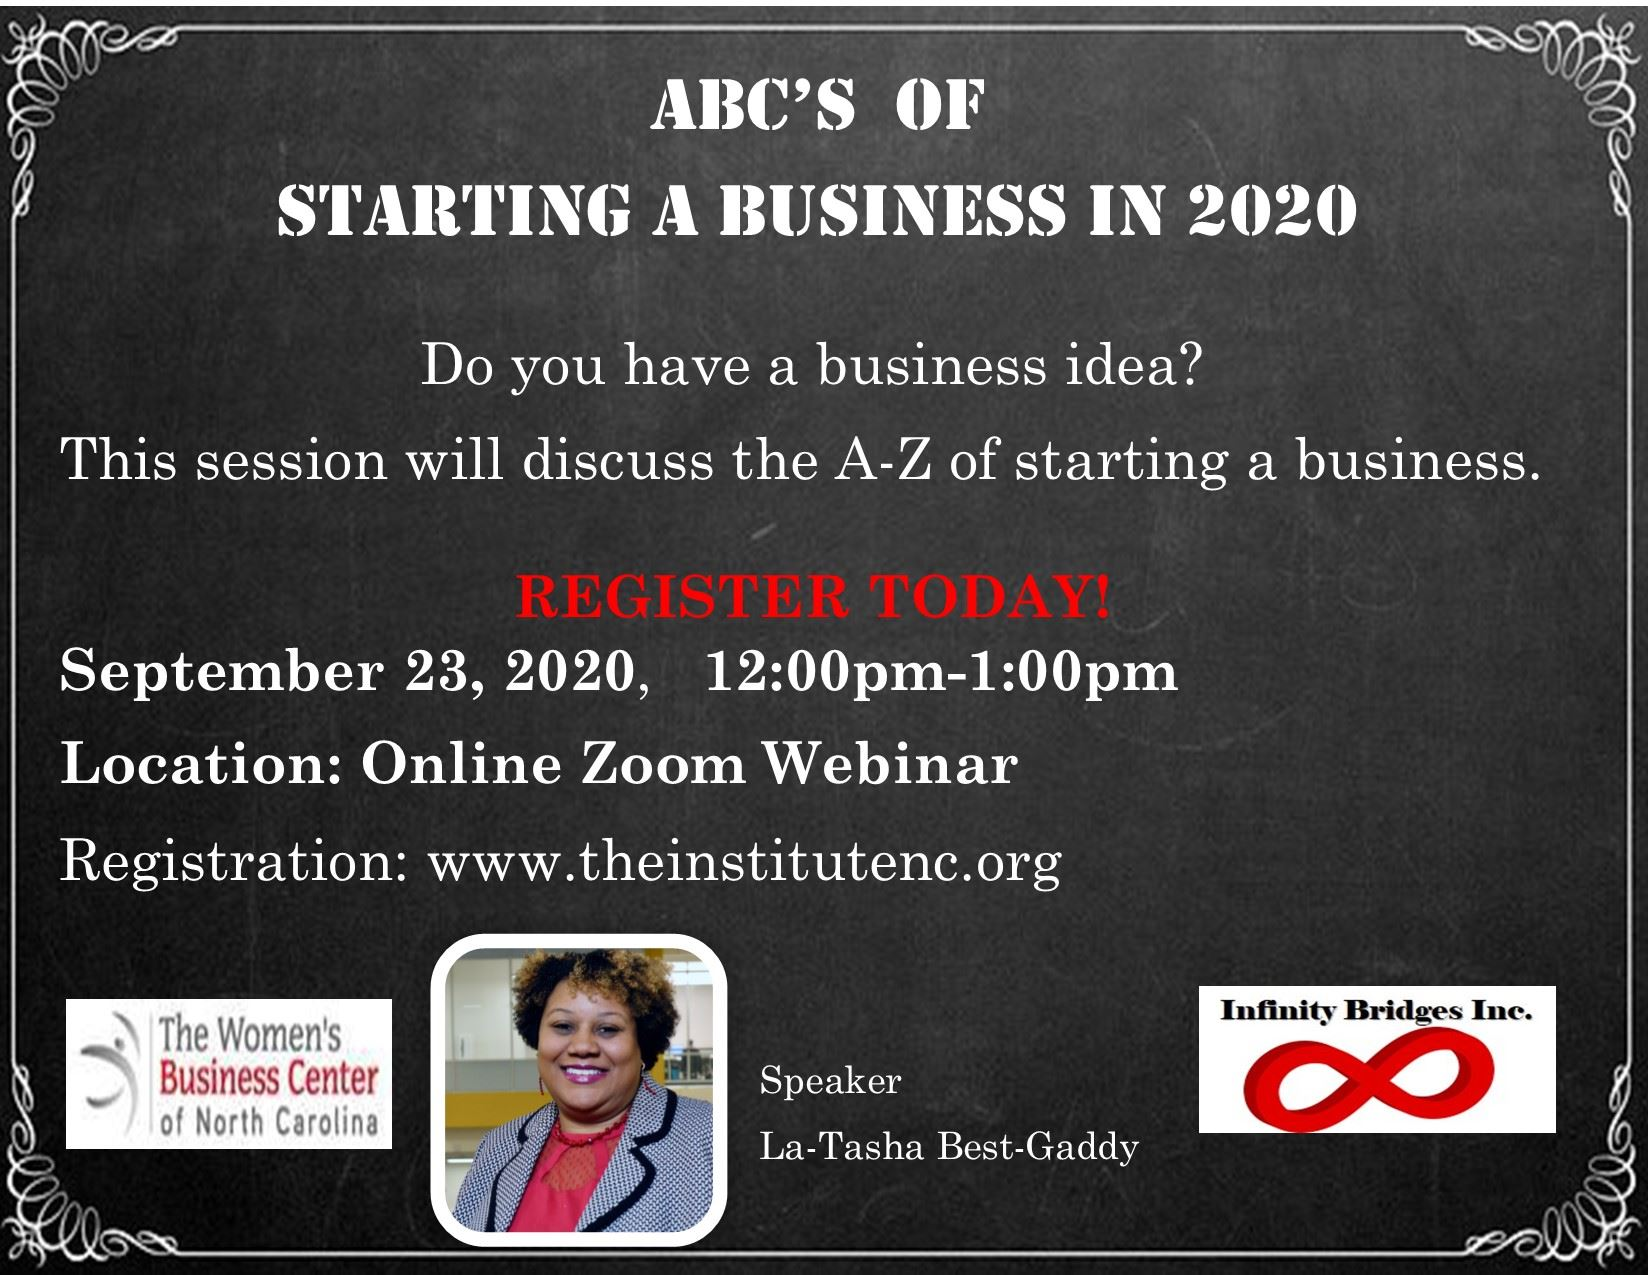 ABC of Starting a Business 2020 marketing